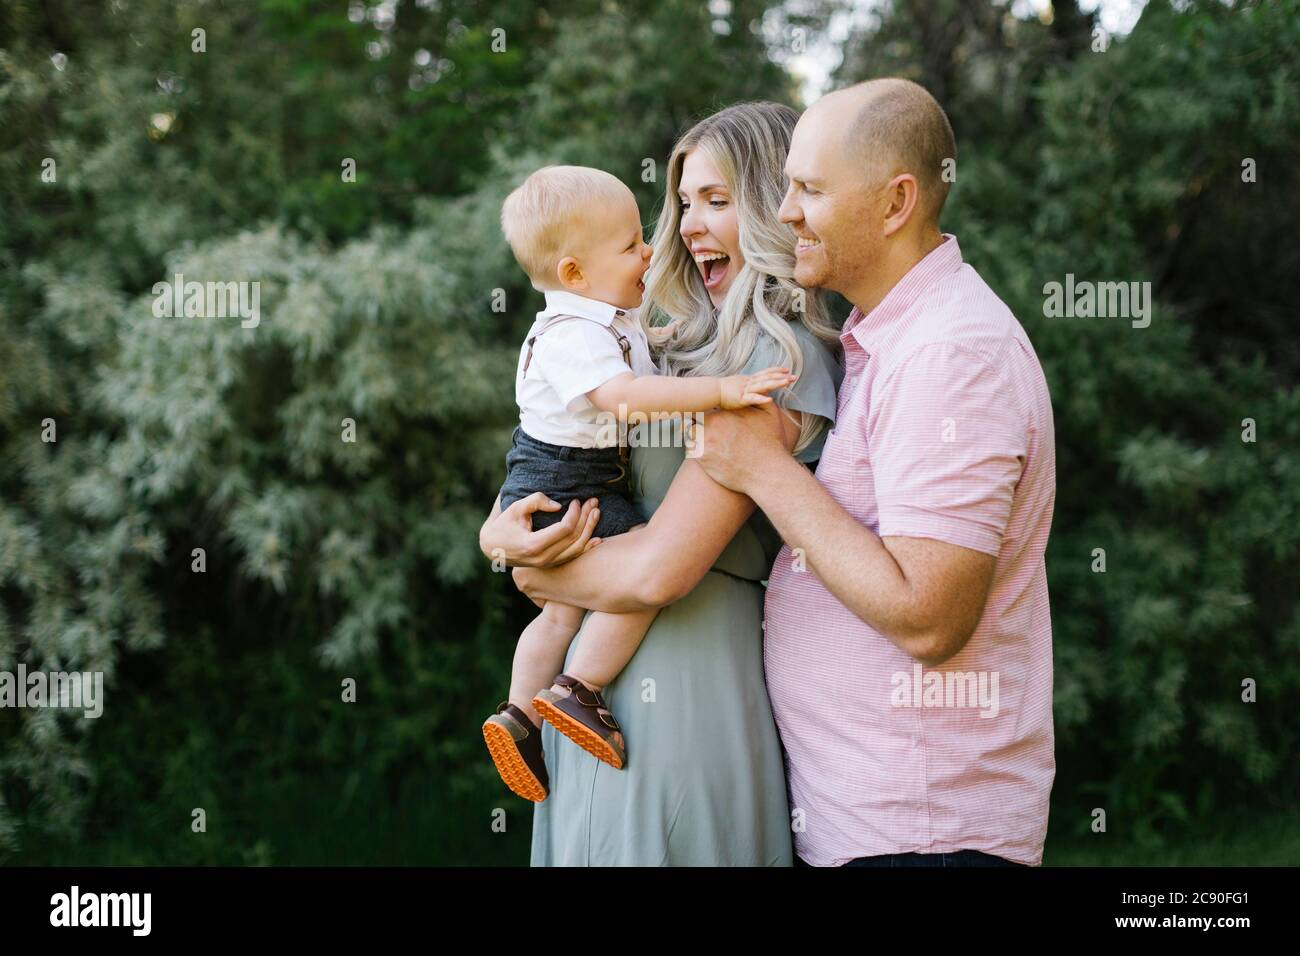 Parents embracing with baby son outdoors Stock Photo